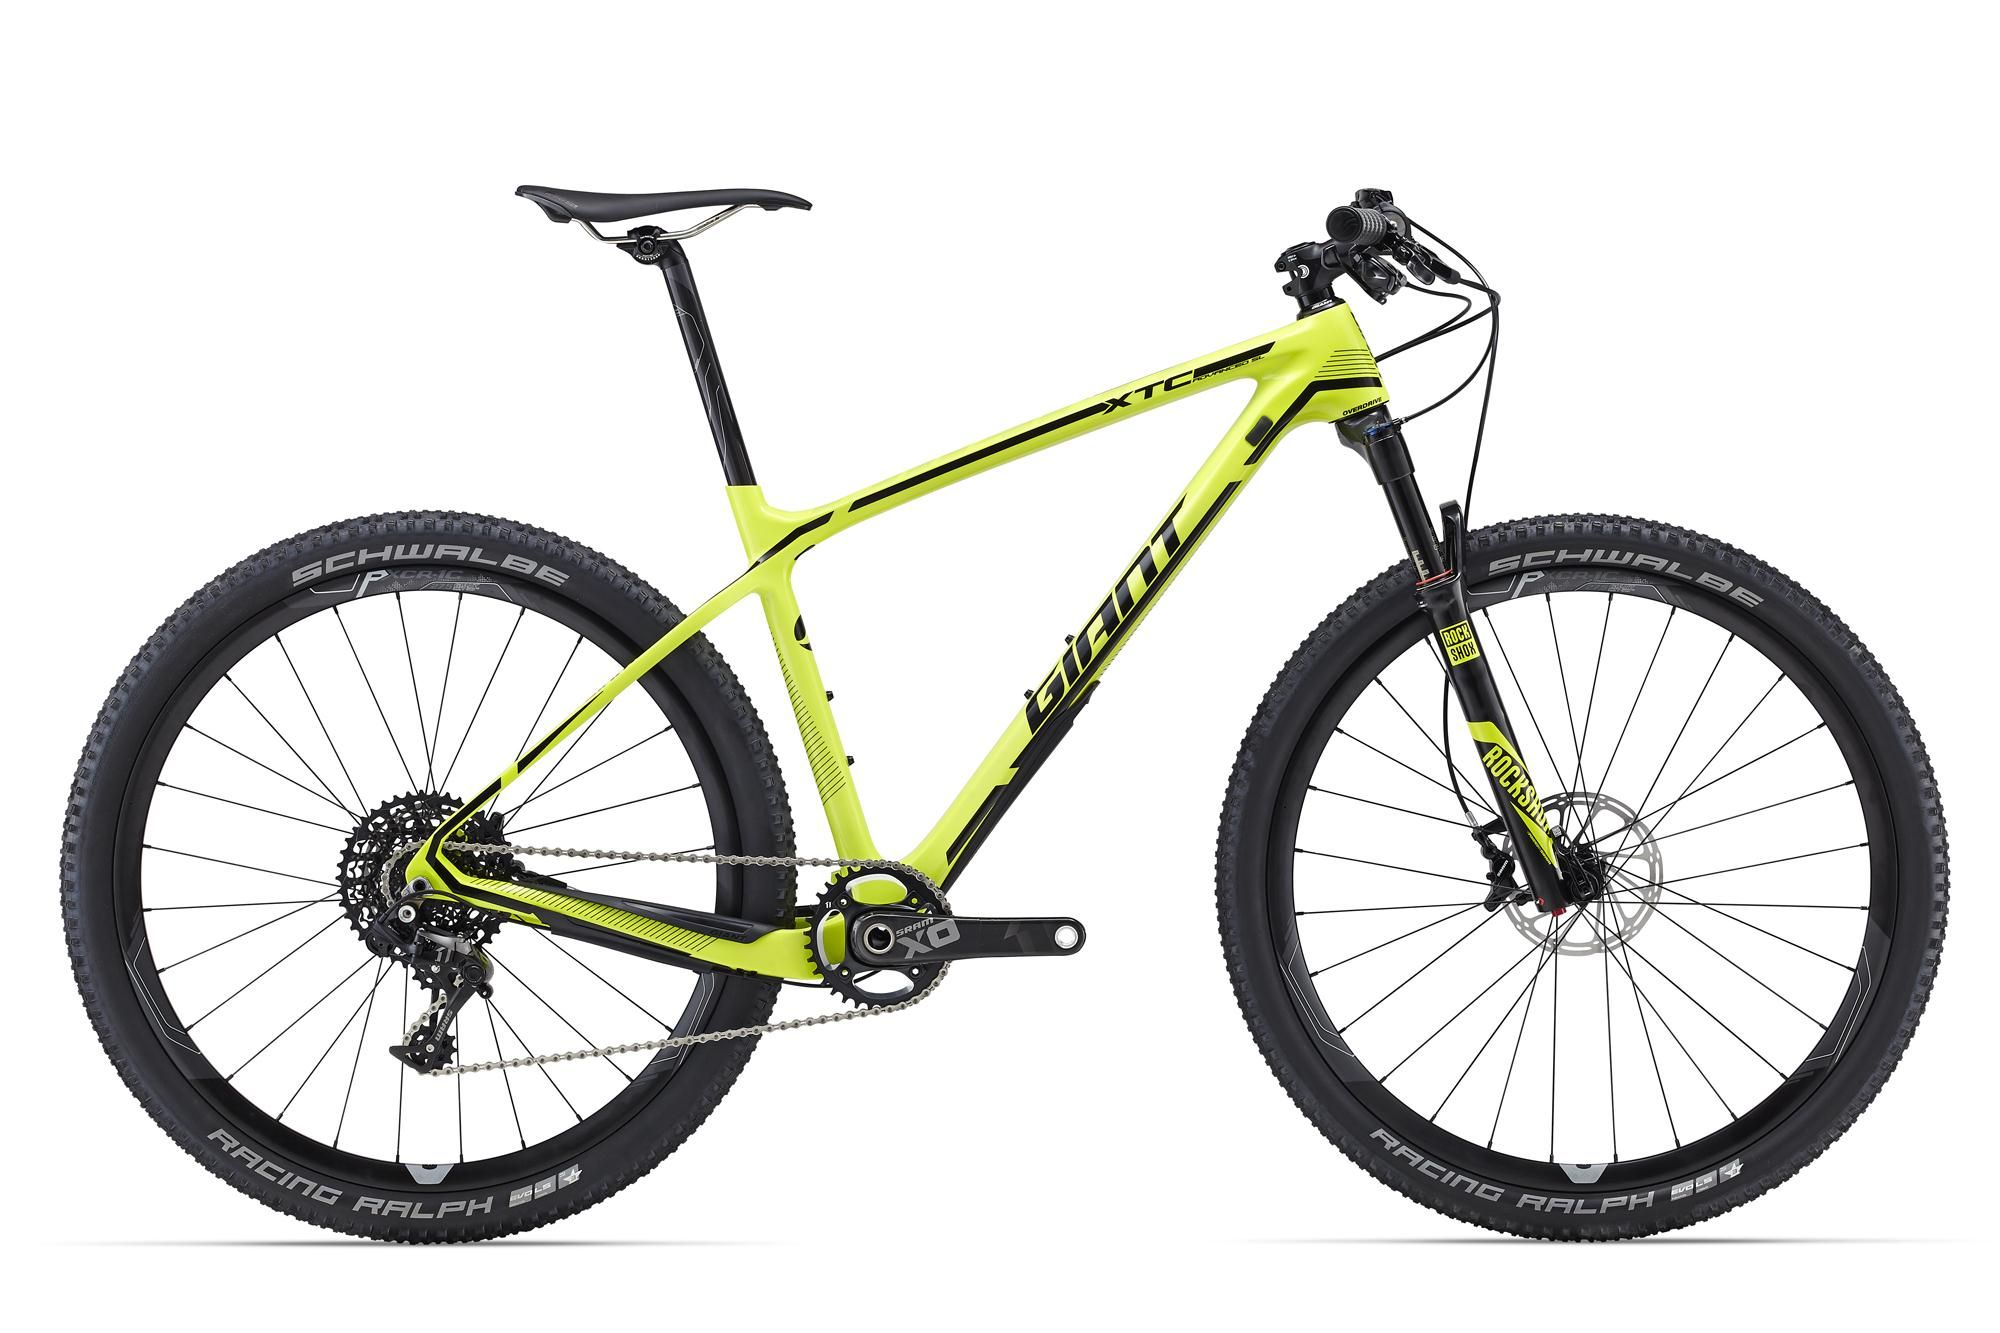 Велосипед Giant XtC Advanced SL 27.5 1 2016 велосипед giant xtc advanced 27 5 2 2014